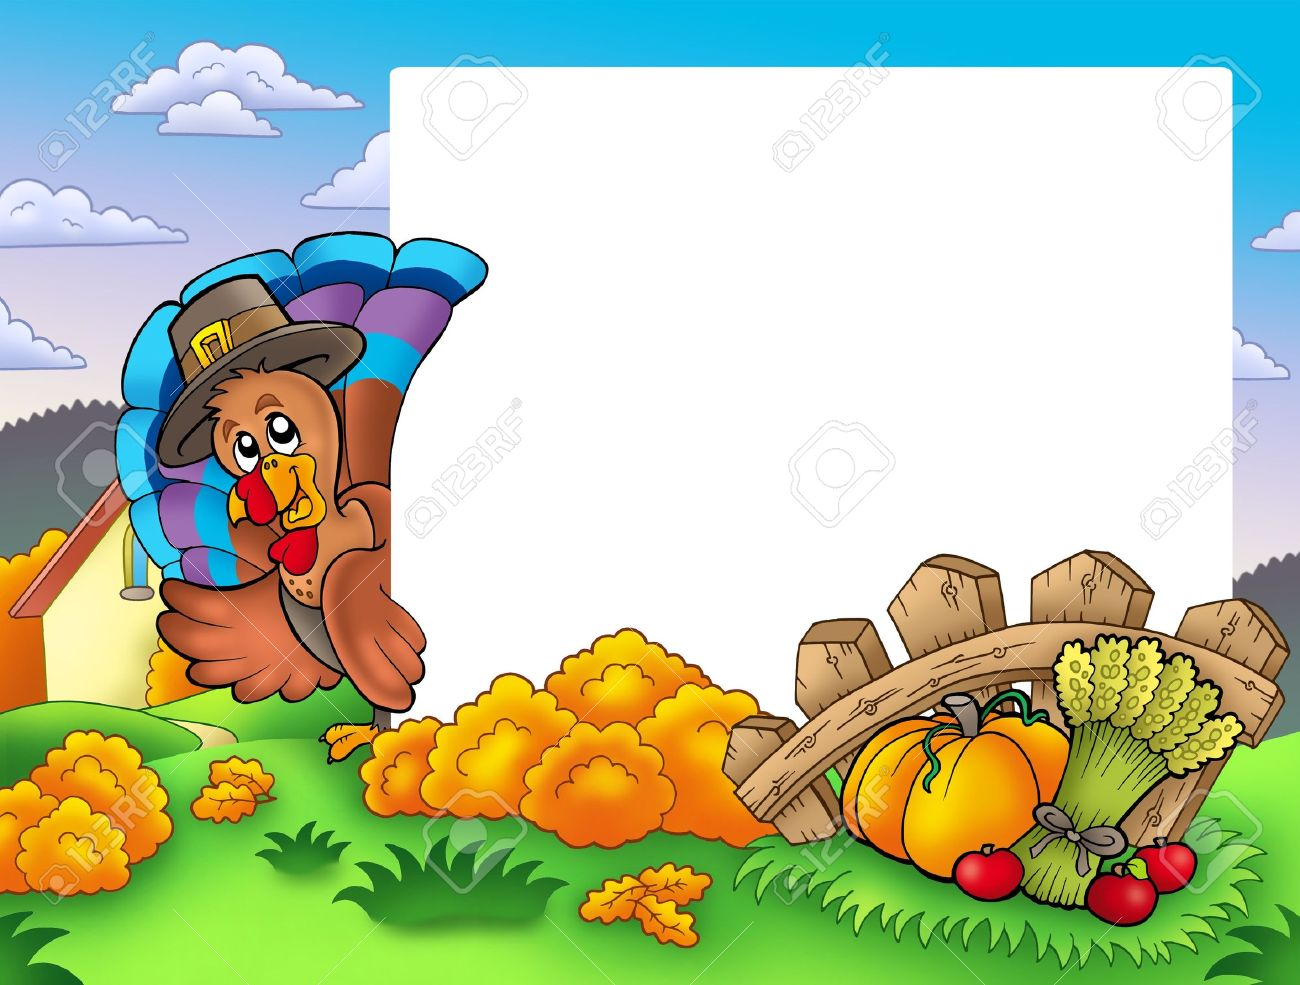 Thanksgiving Frame With Turkey 1 - Color Illustration. Stock Photo ...